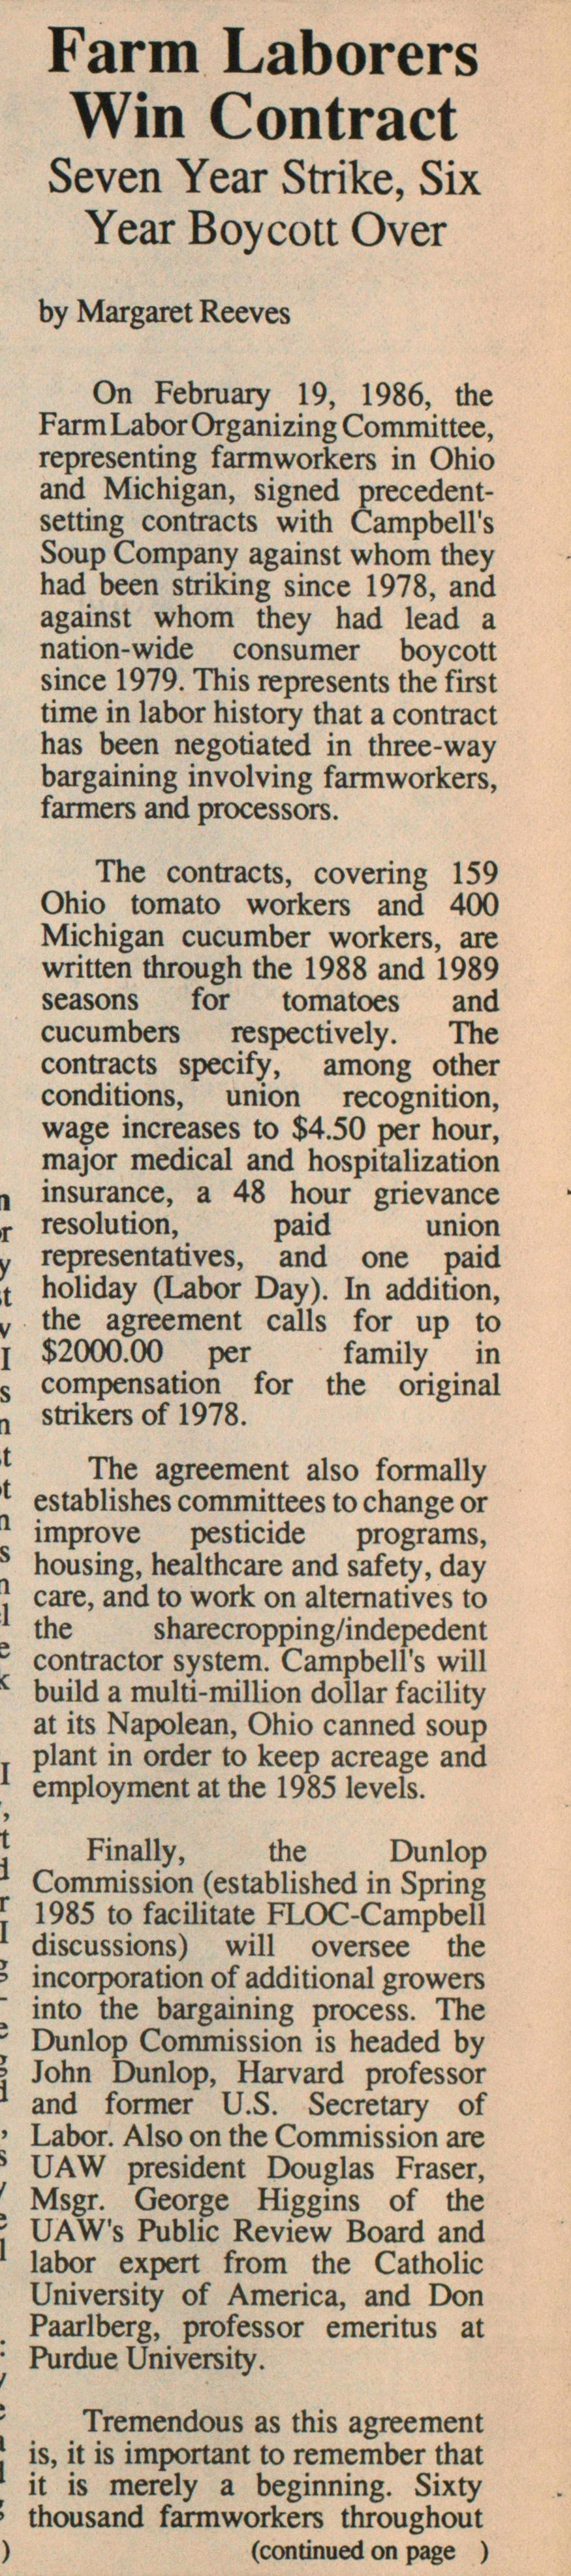 Farm Laborers Win Contract image